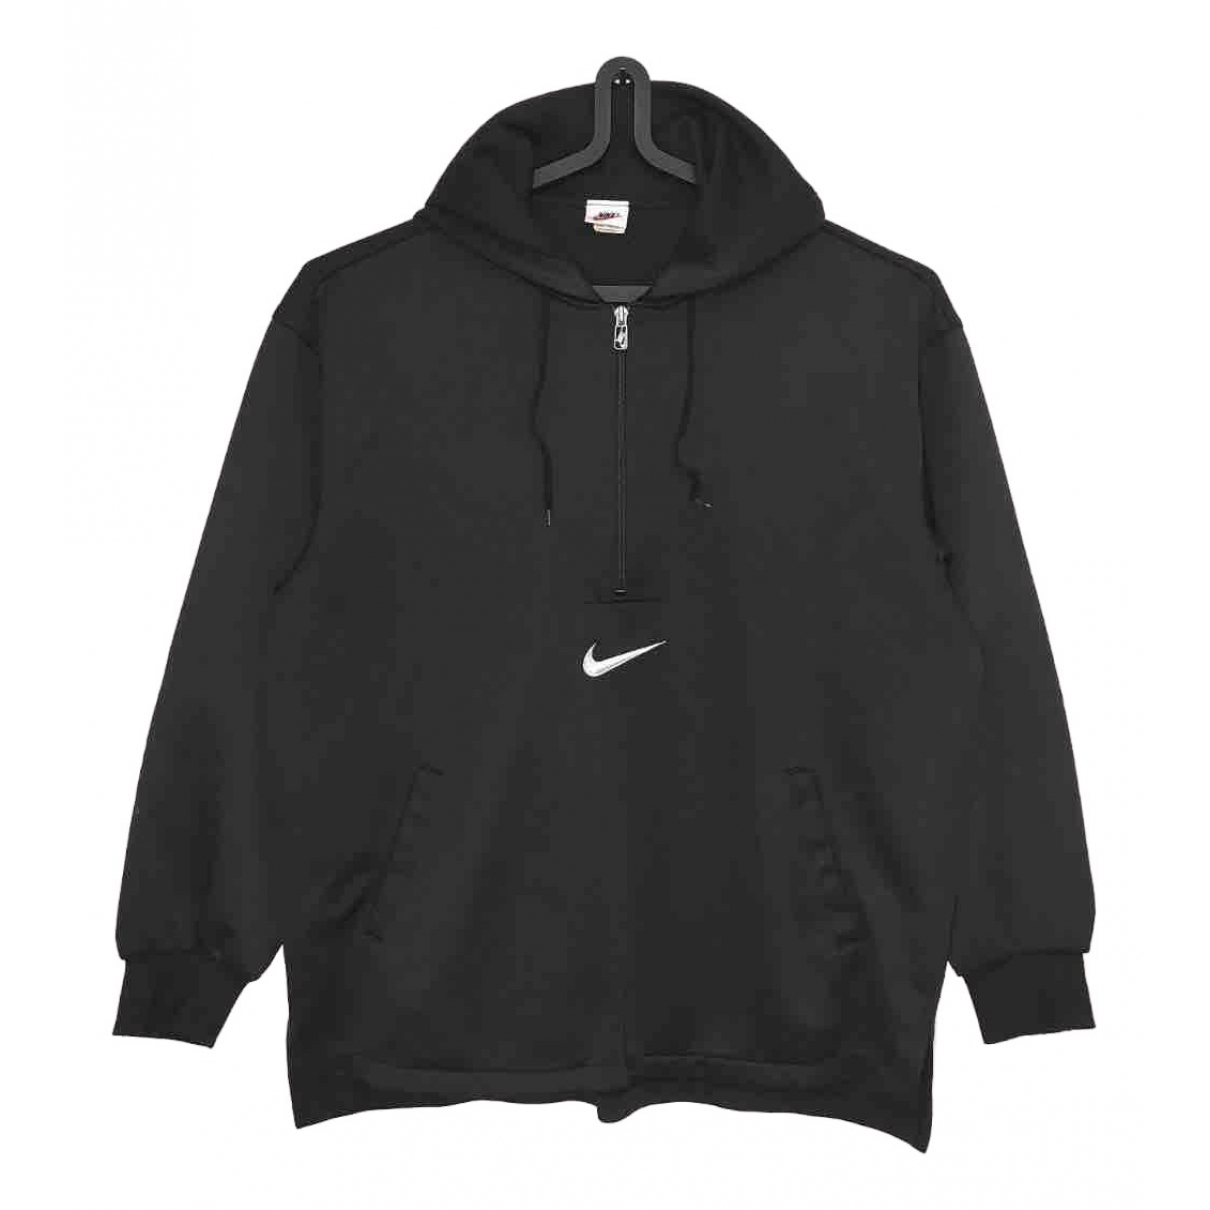 Nike N Black Knitwear & Sweatshirts for Men XL International